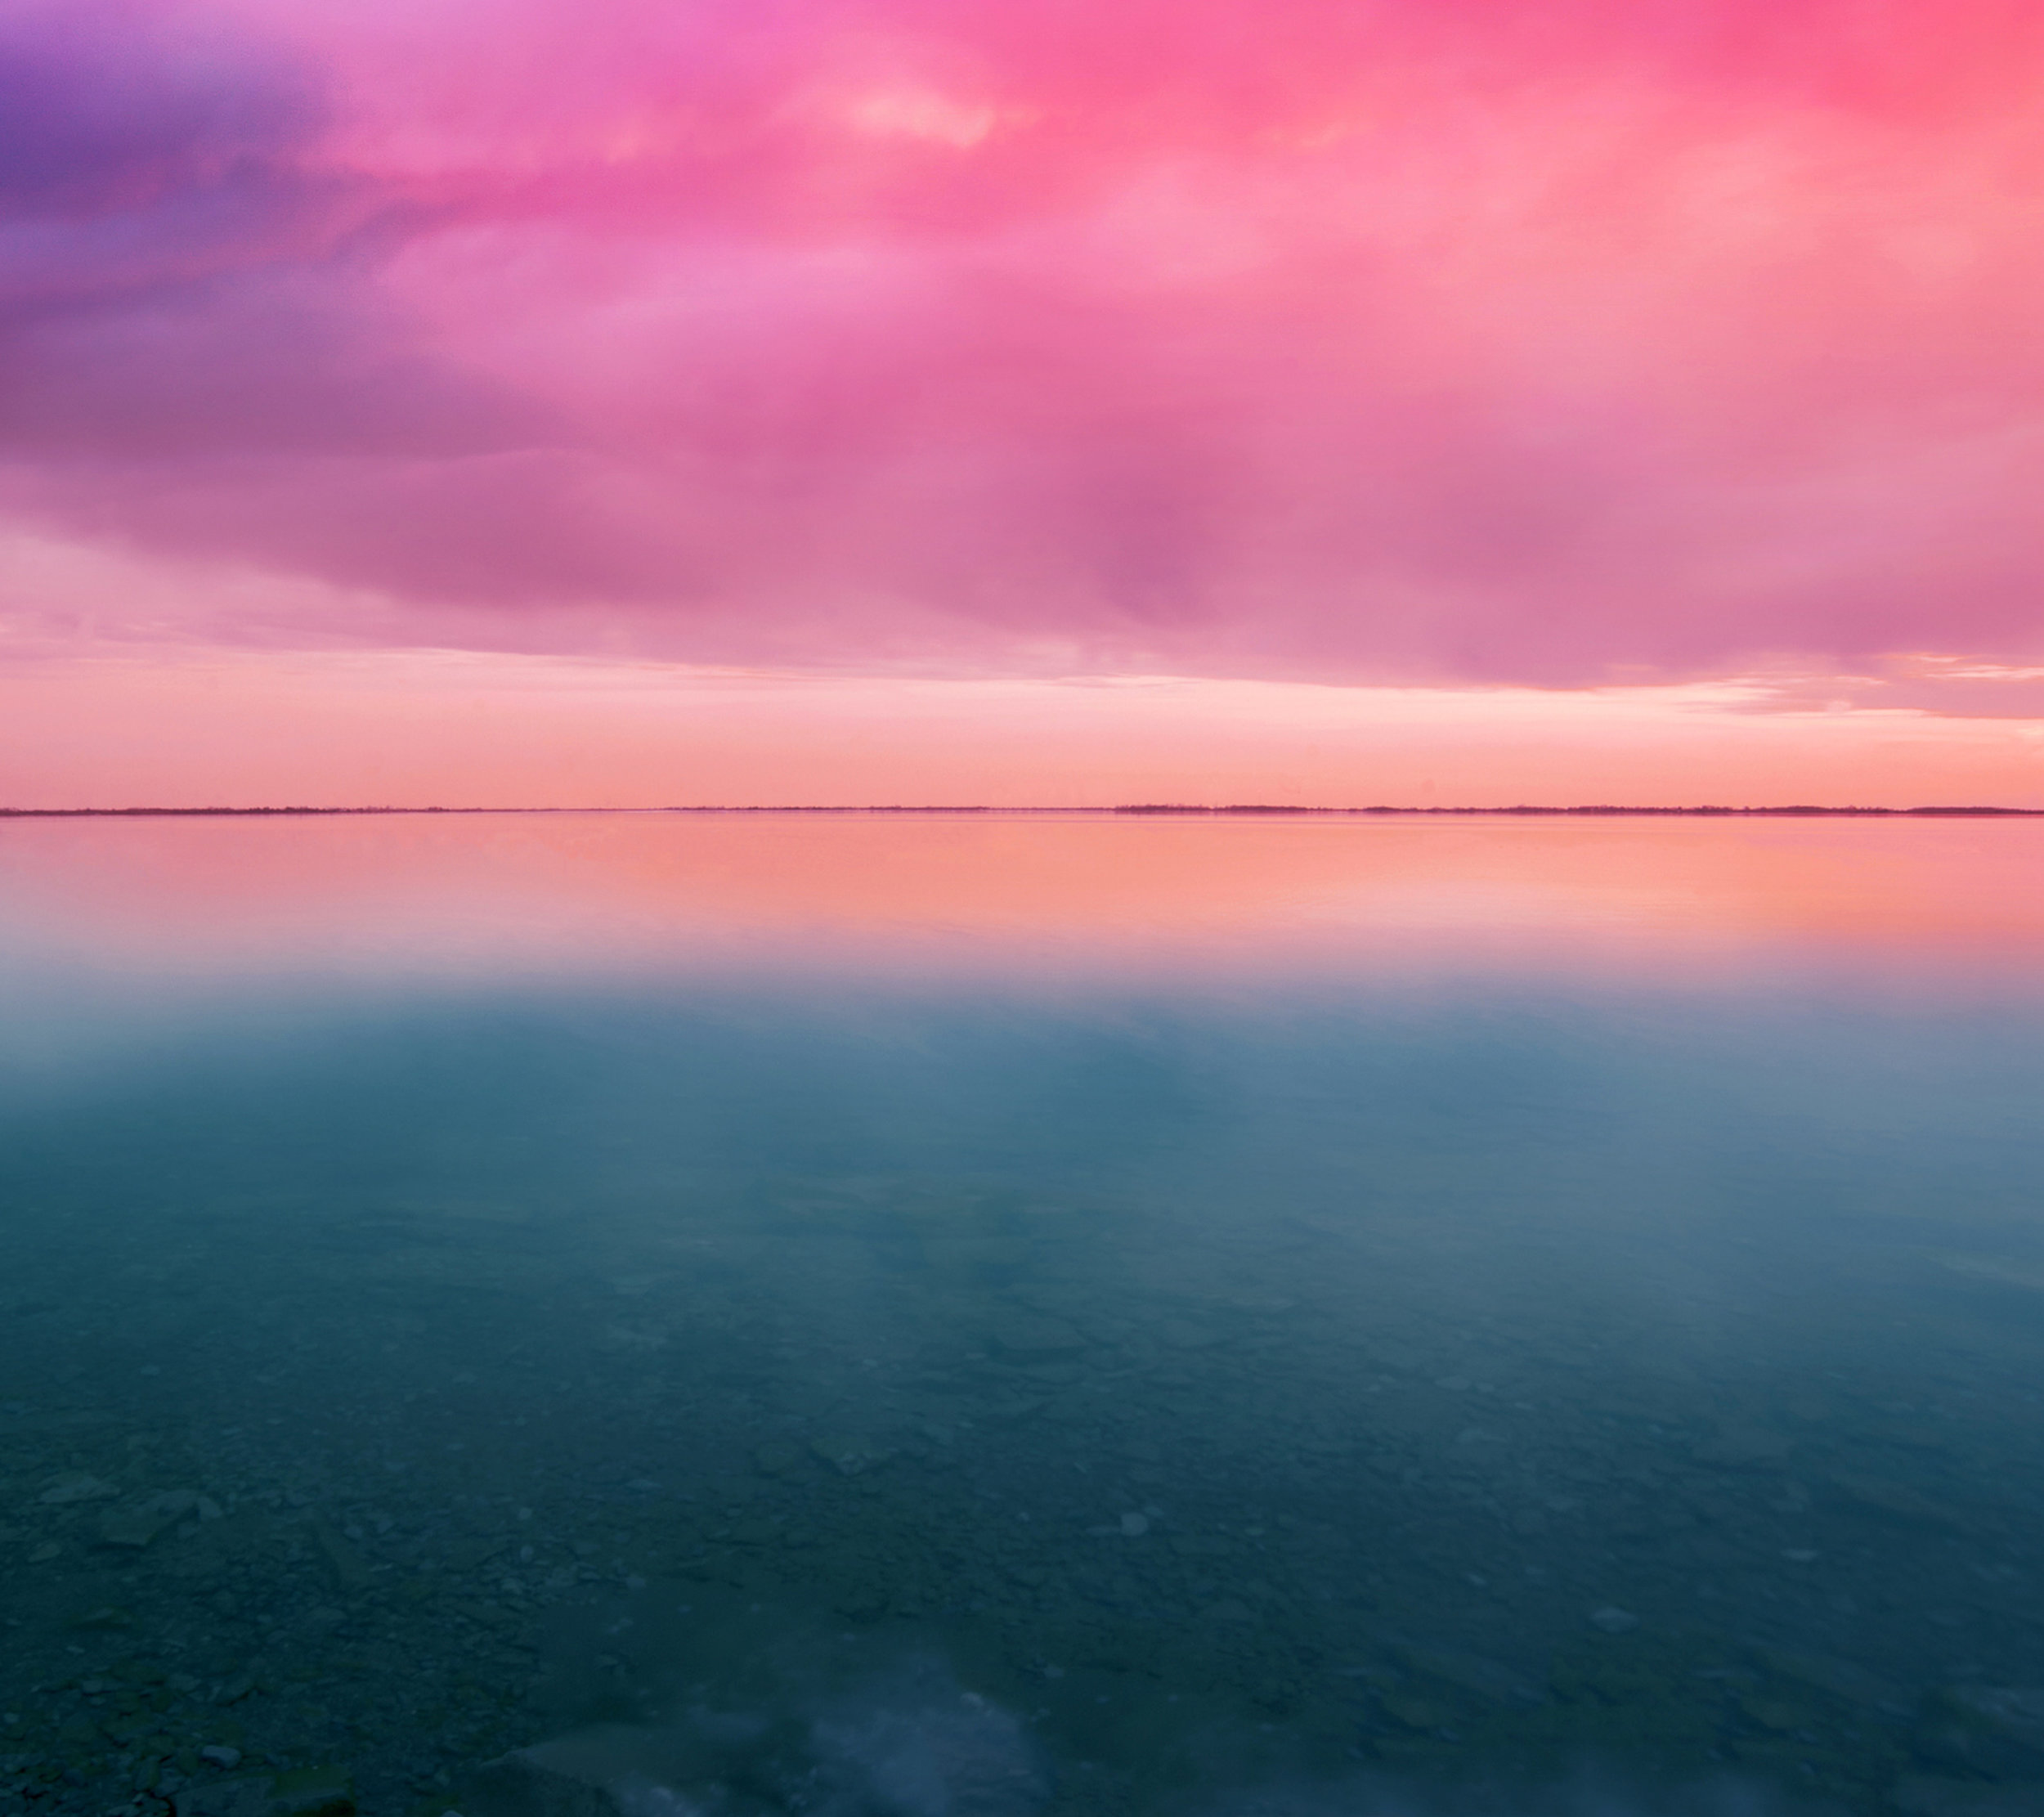 pink-clouds-2880x2560-sunset-stock-hd-9327.jpg